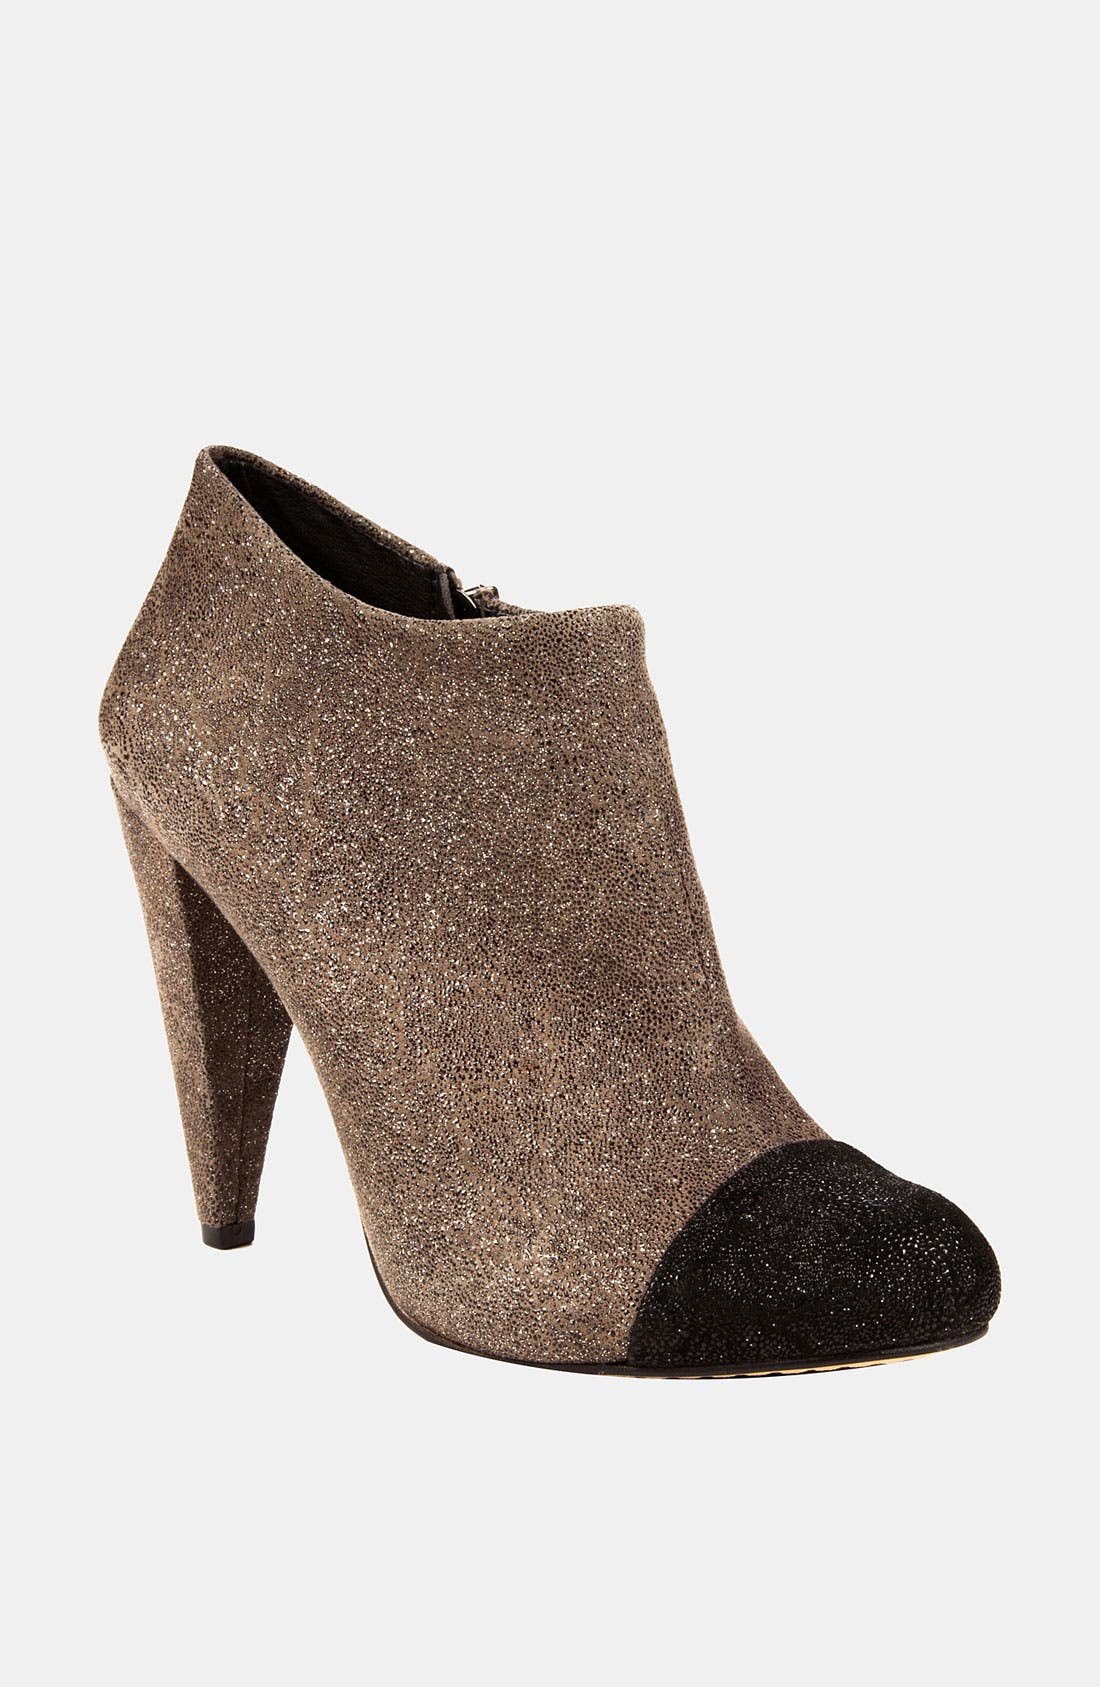 Alternate Image 1 Selected - Vince Camuto 'Amoby 2' Bootie